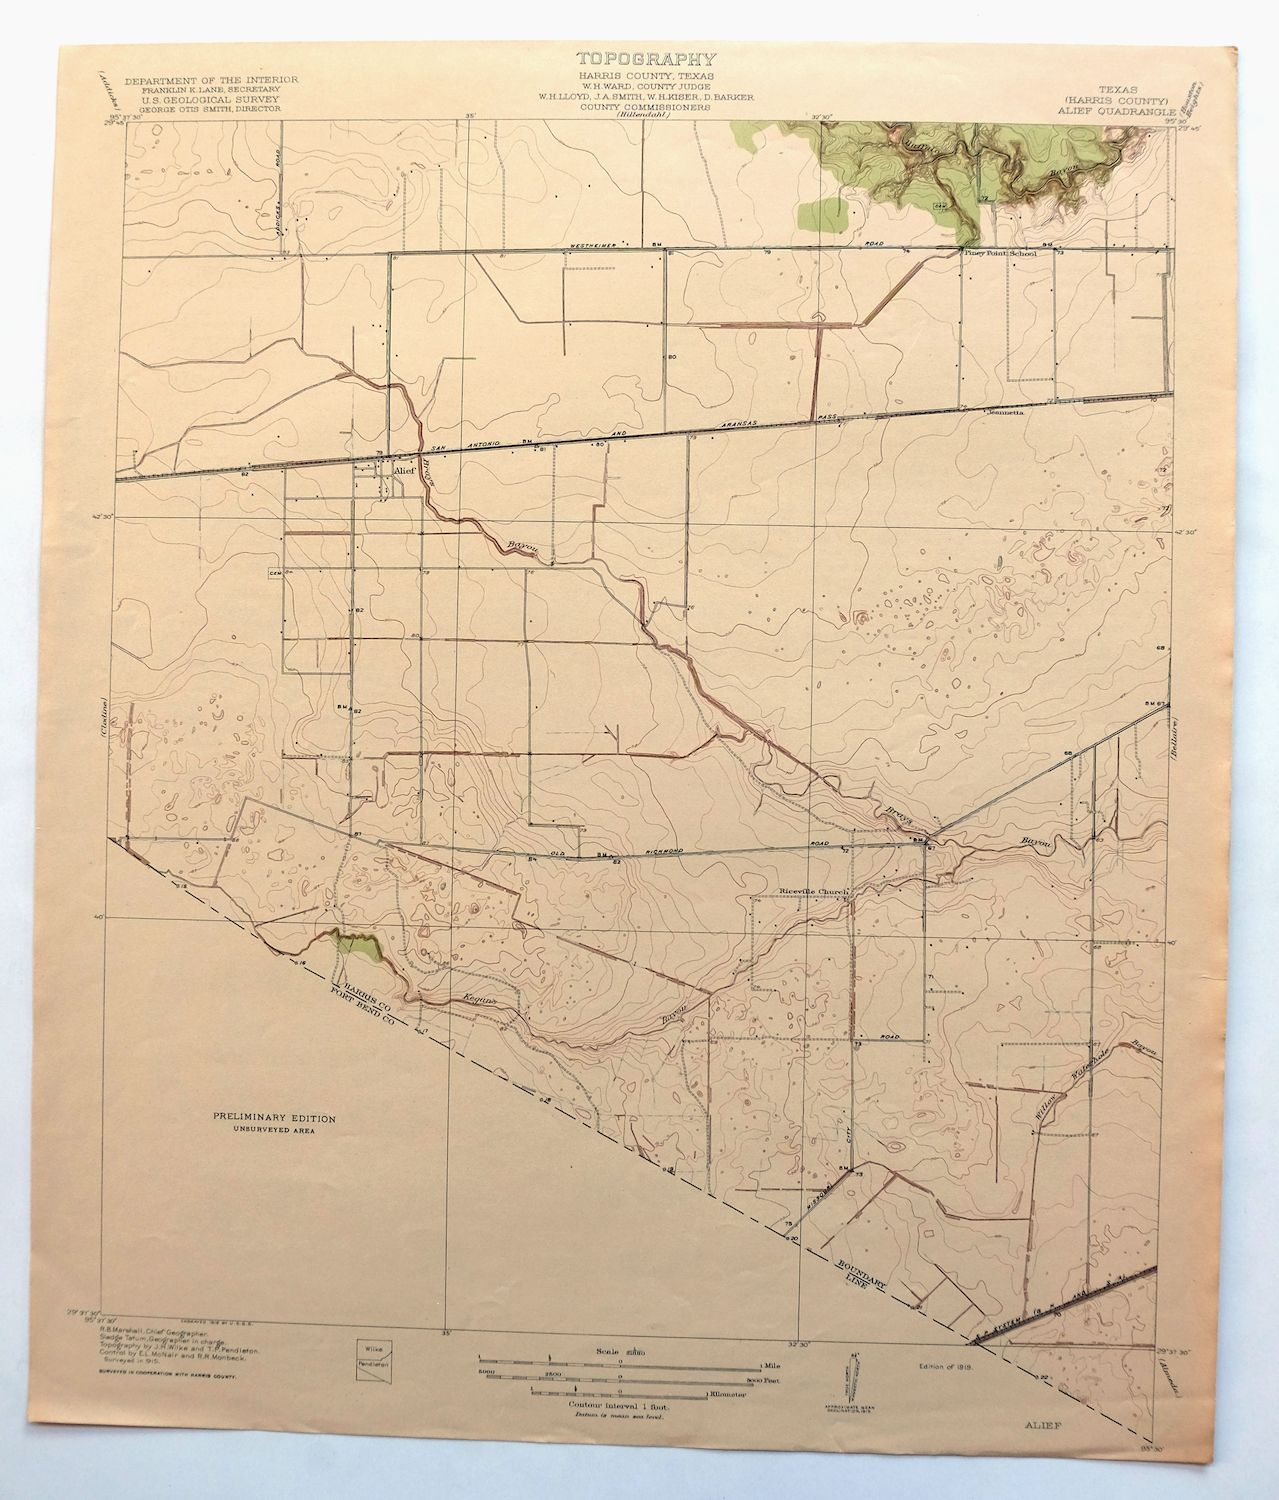 1919 Alief Texas Antique Original Usgs Topo Map Houston Sugarland